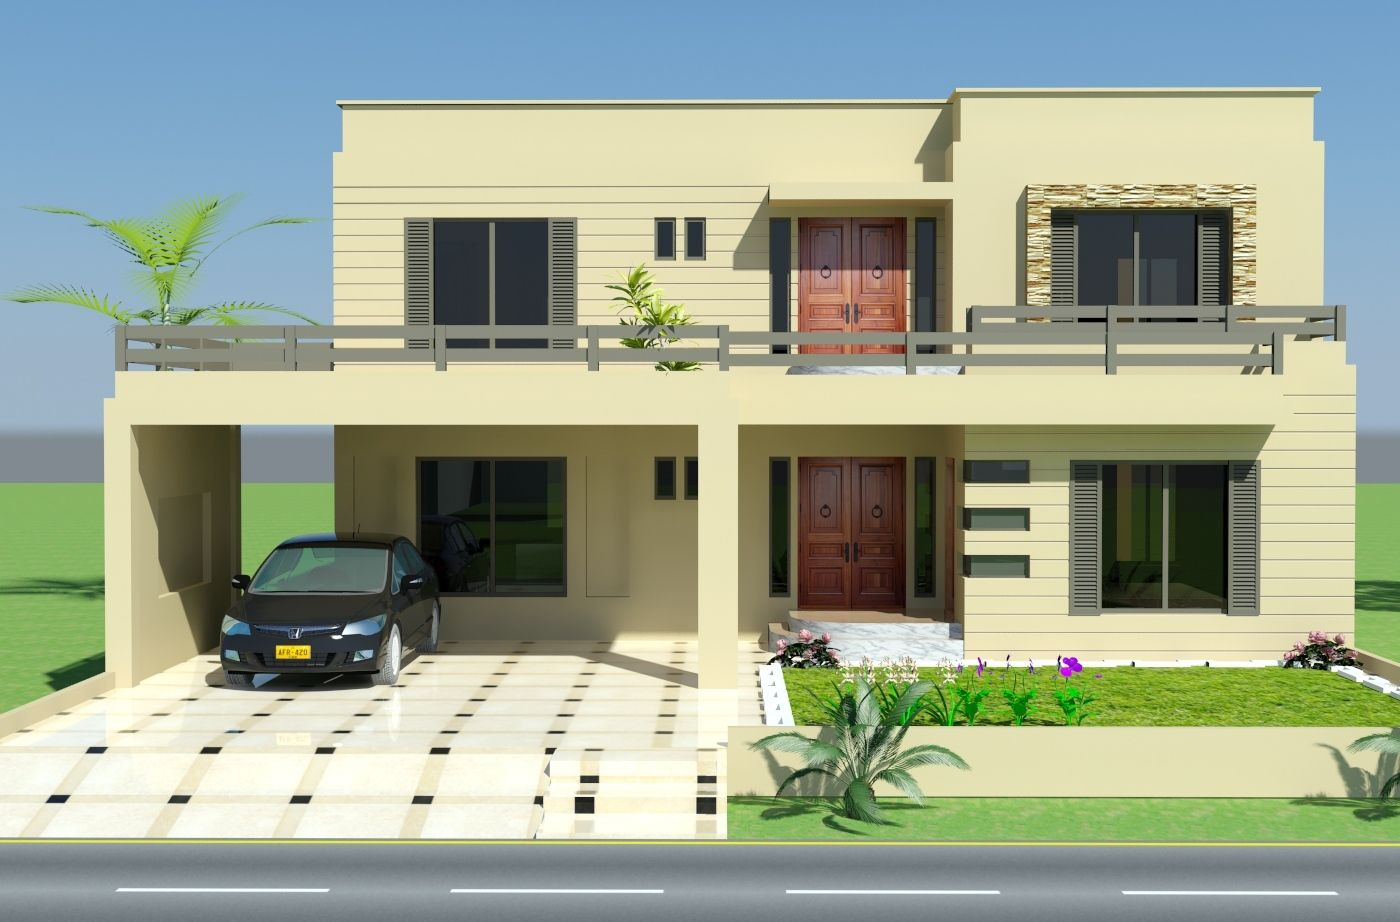 Exterior house design front elevation mi futura casa for Design exterior of home